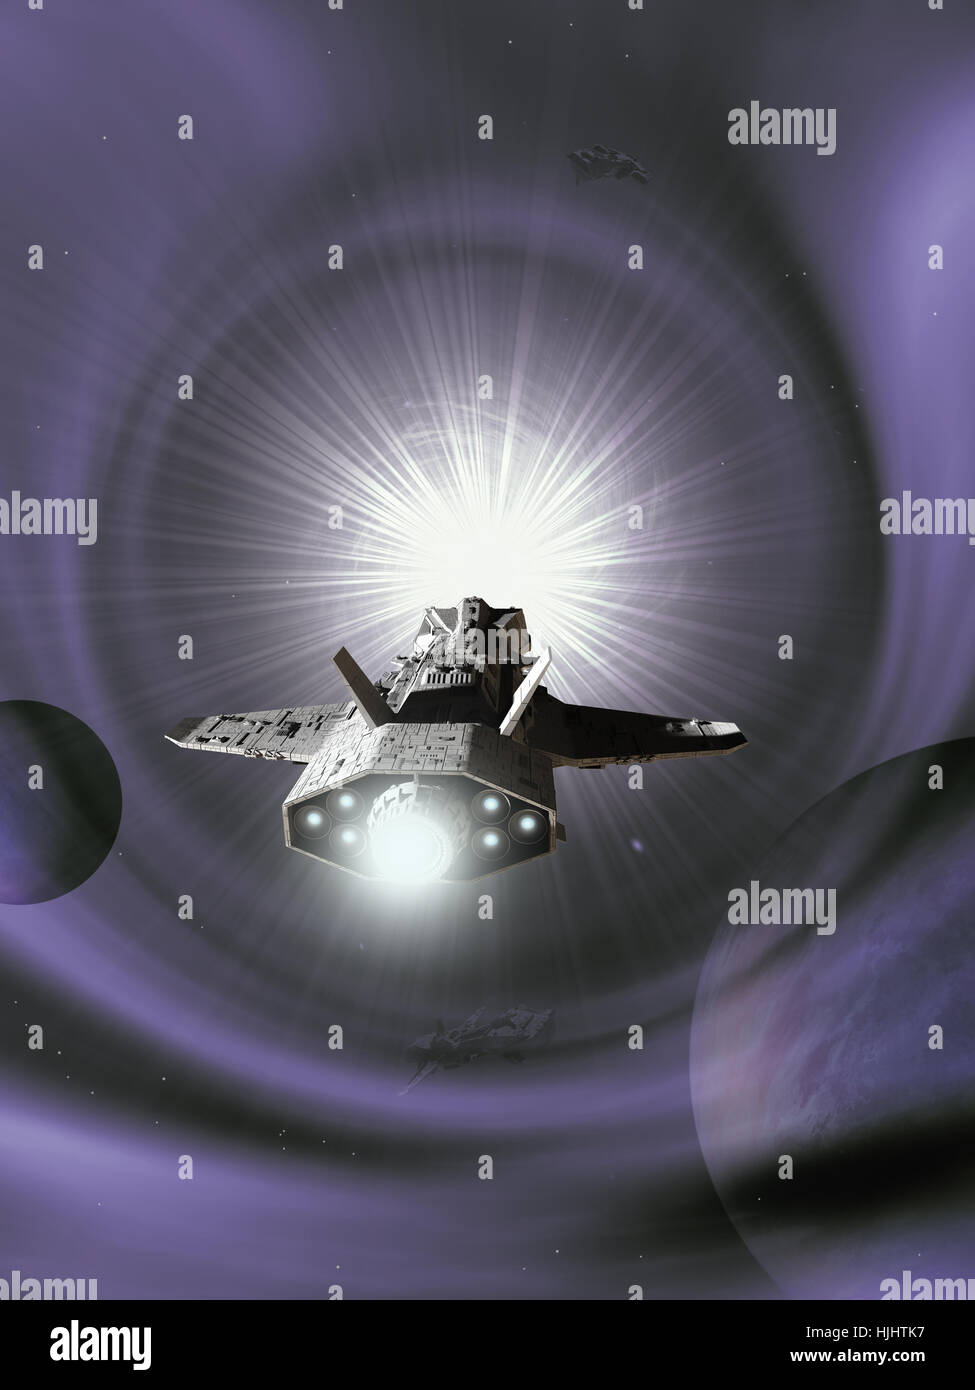 Interplanetary Spaceship Approaching a Purple Wormhole in Deep Space - science fiction illustration - Stock Image